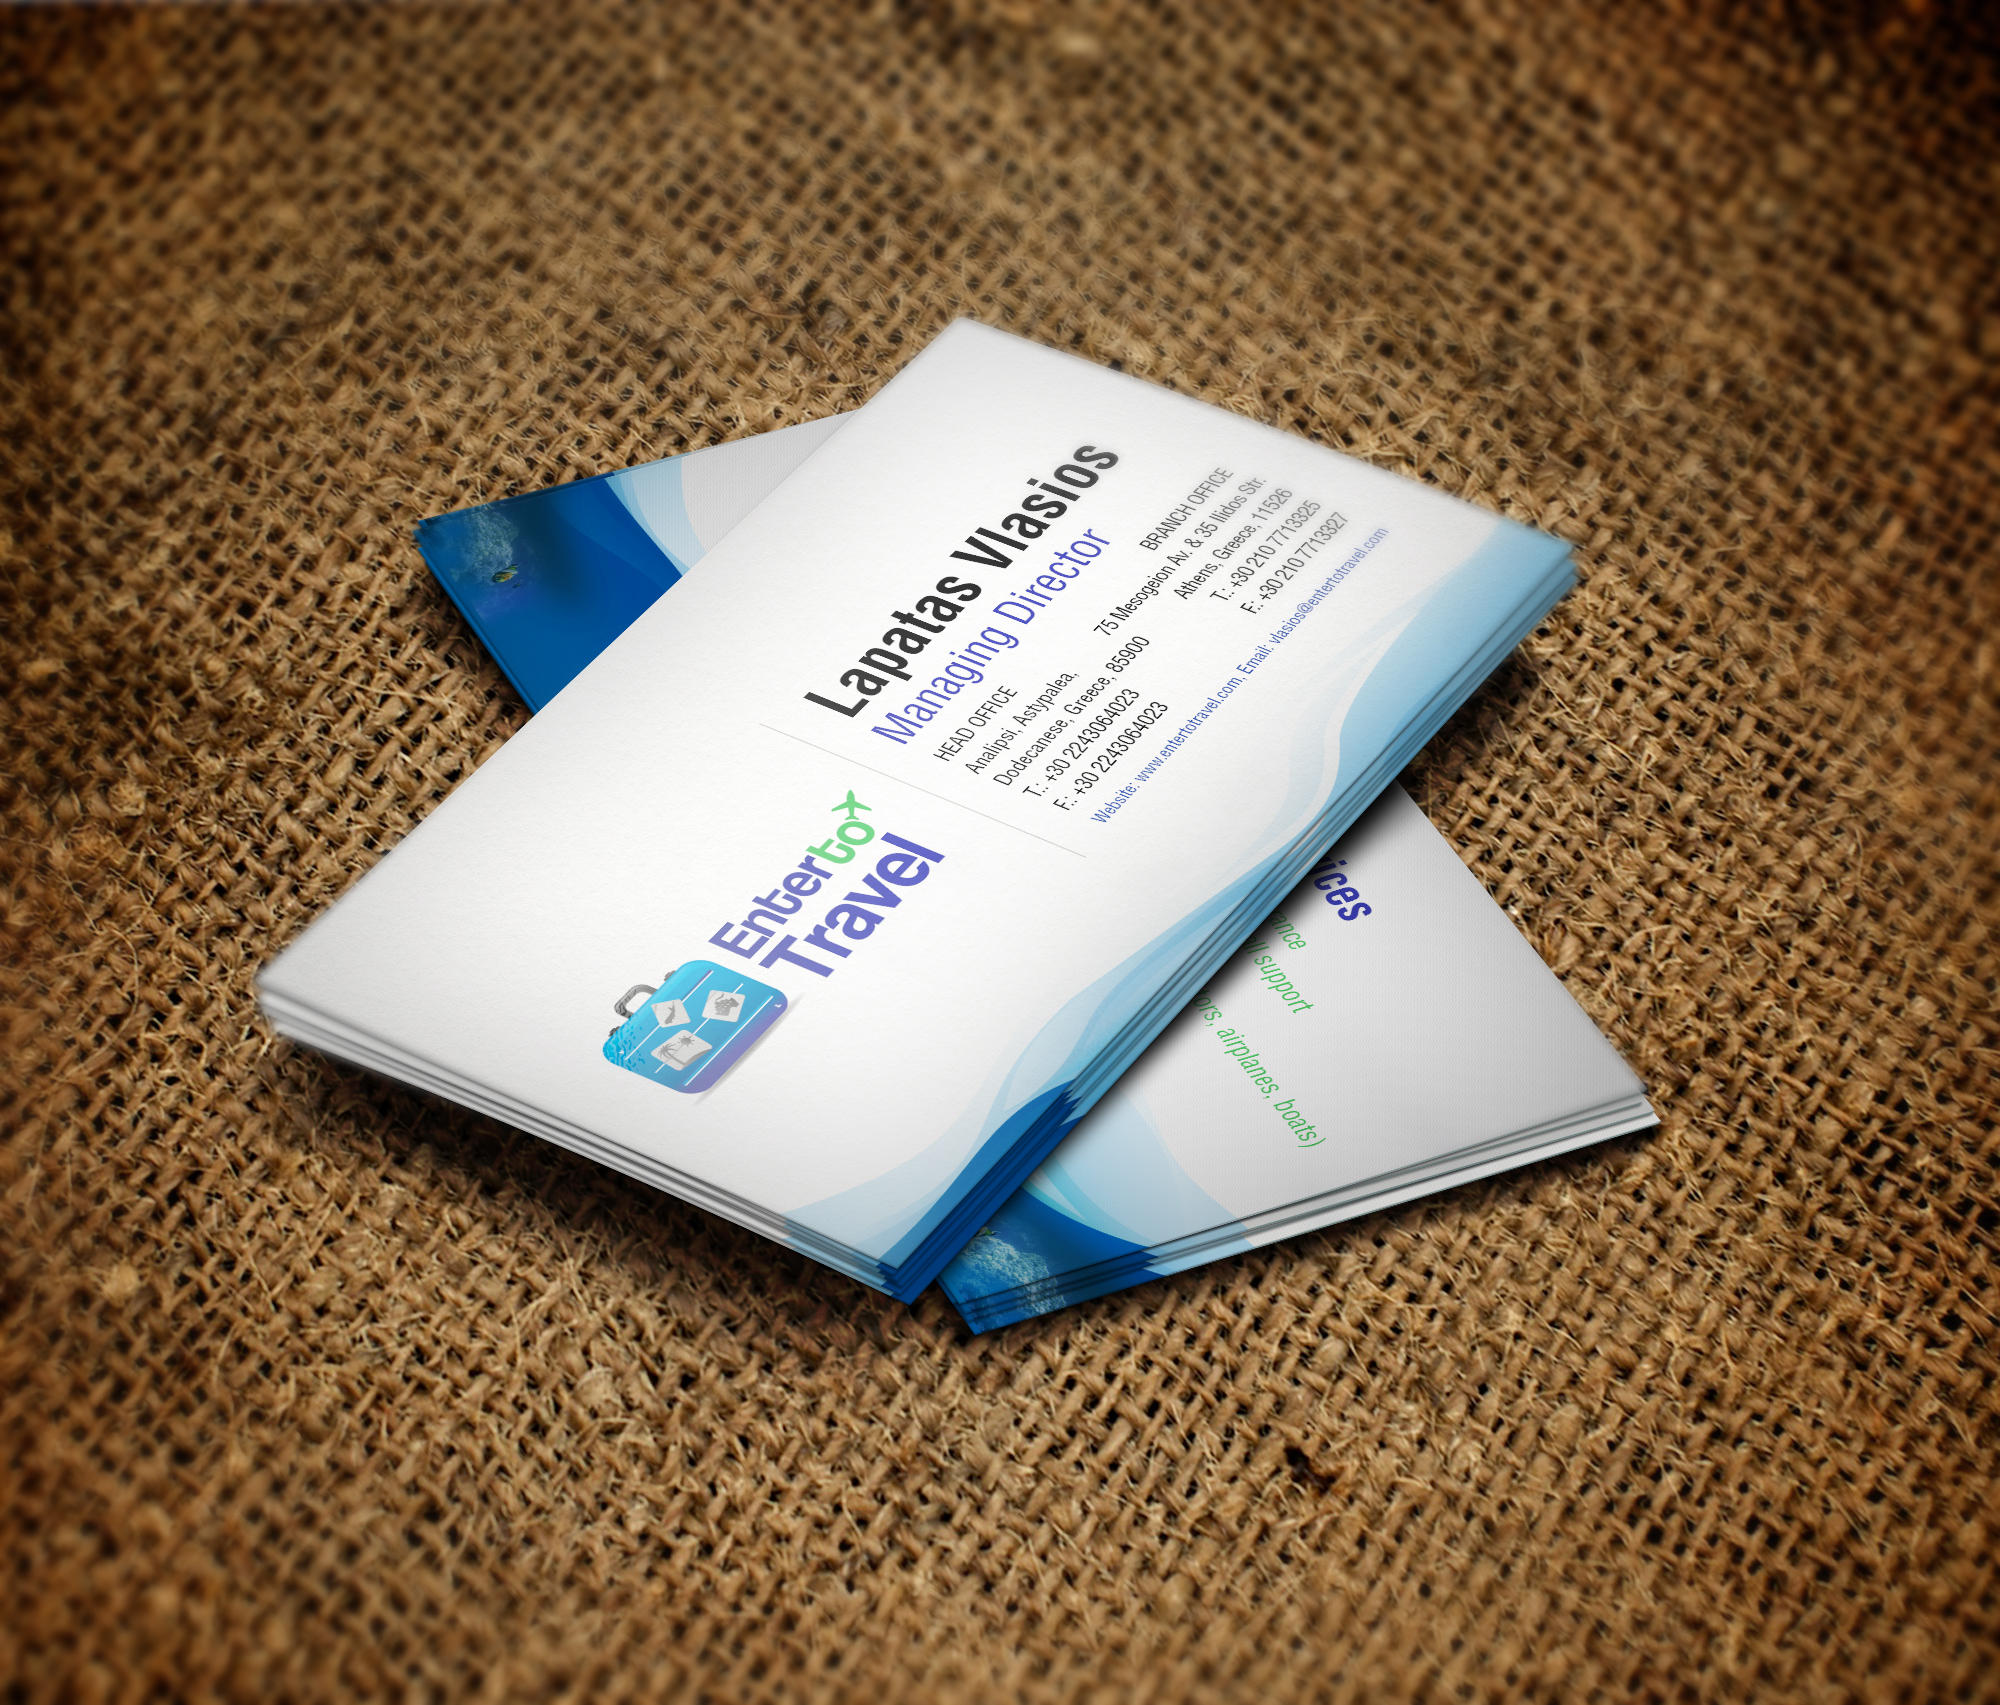 Enter To Travel Business Card Design by vasiligfx